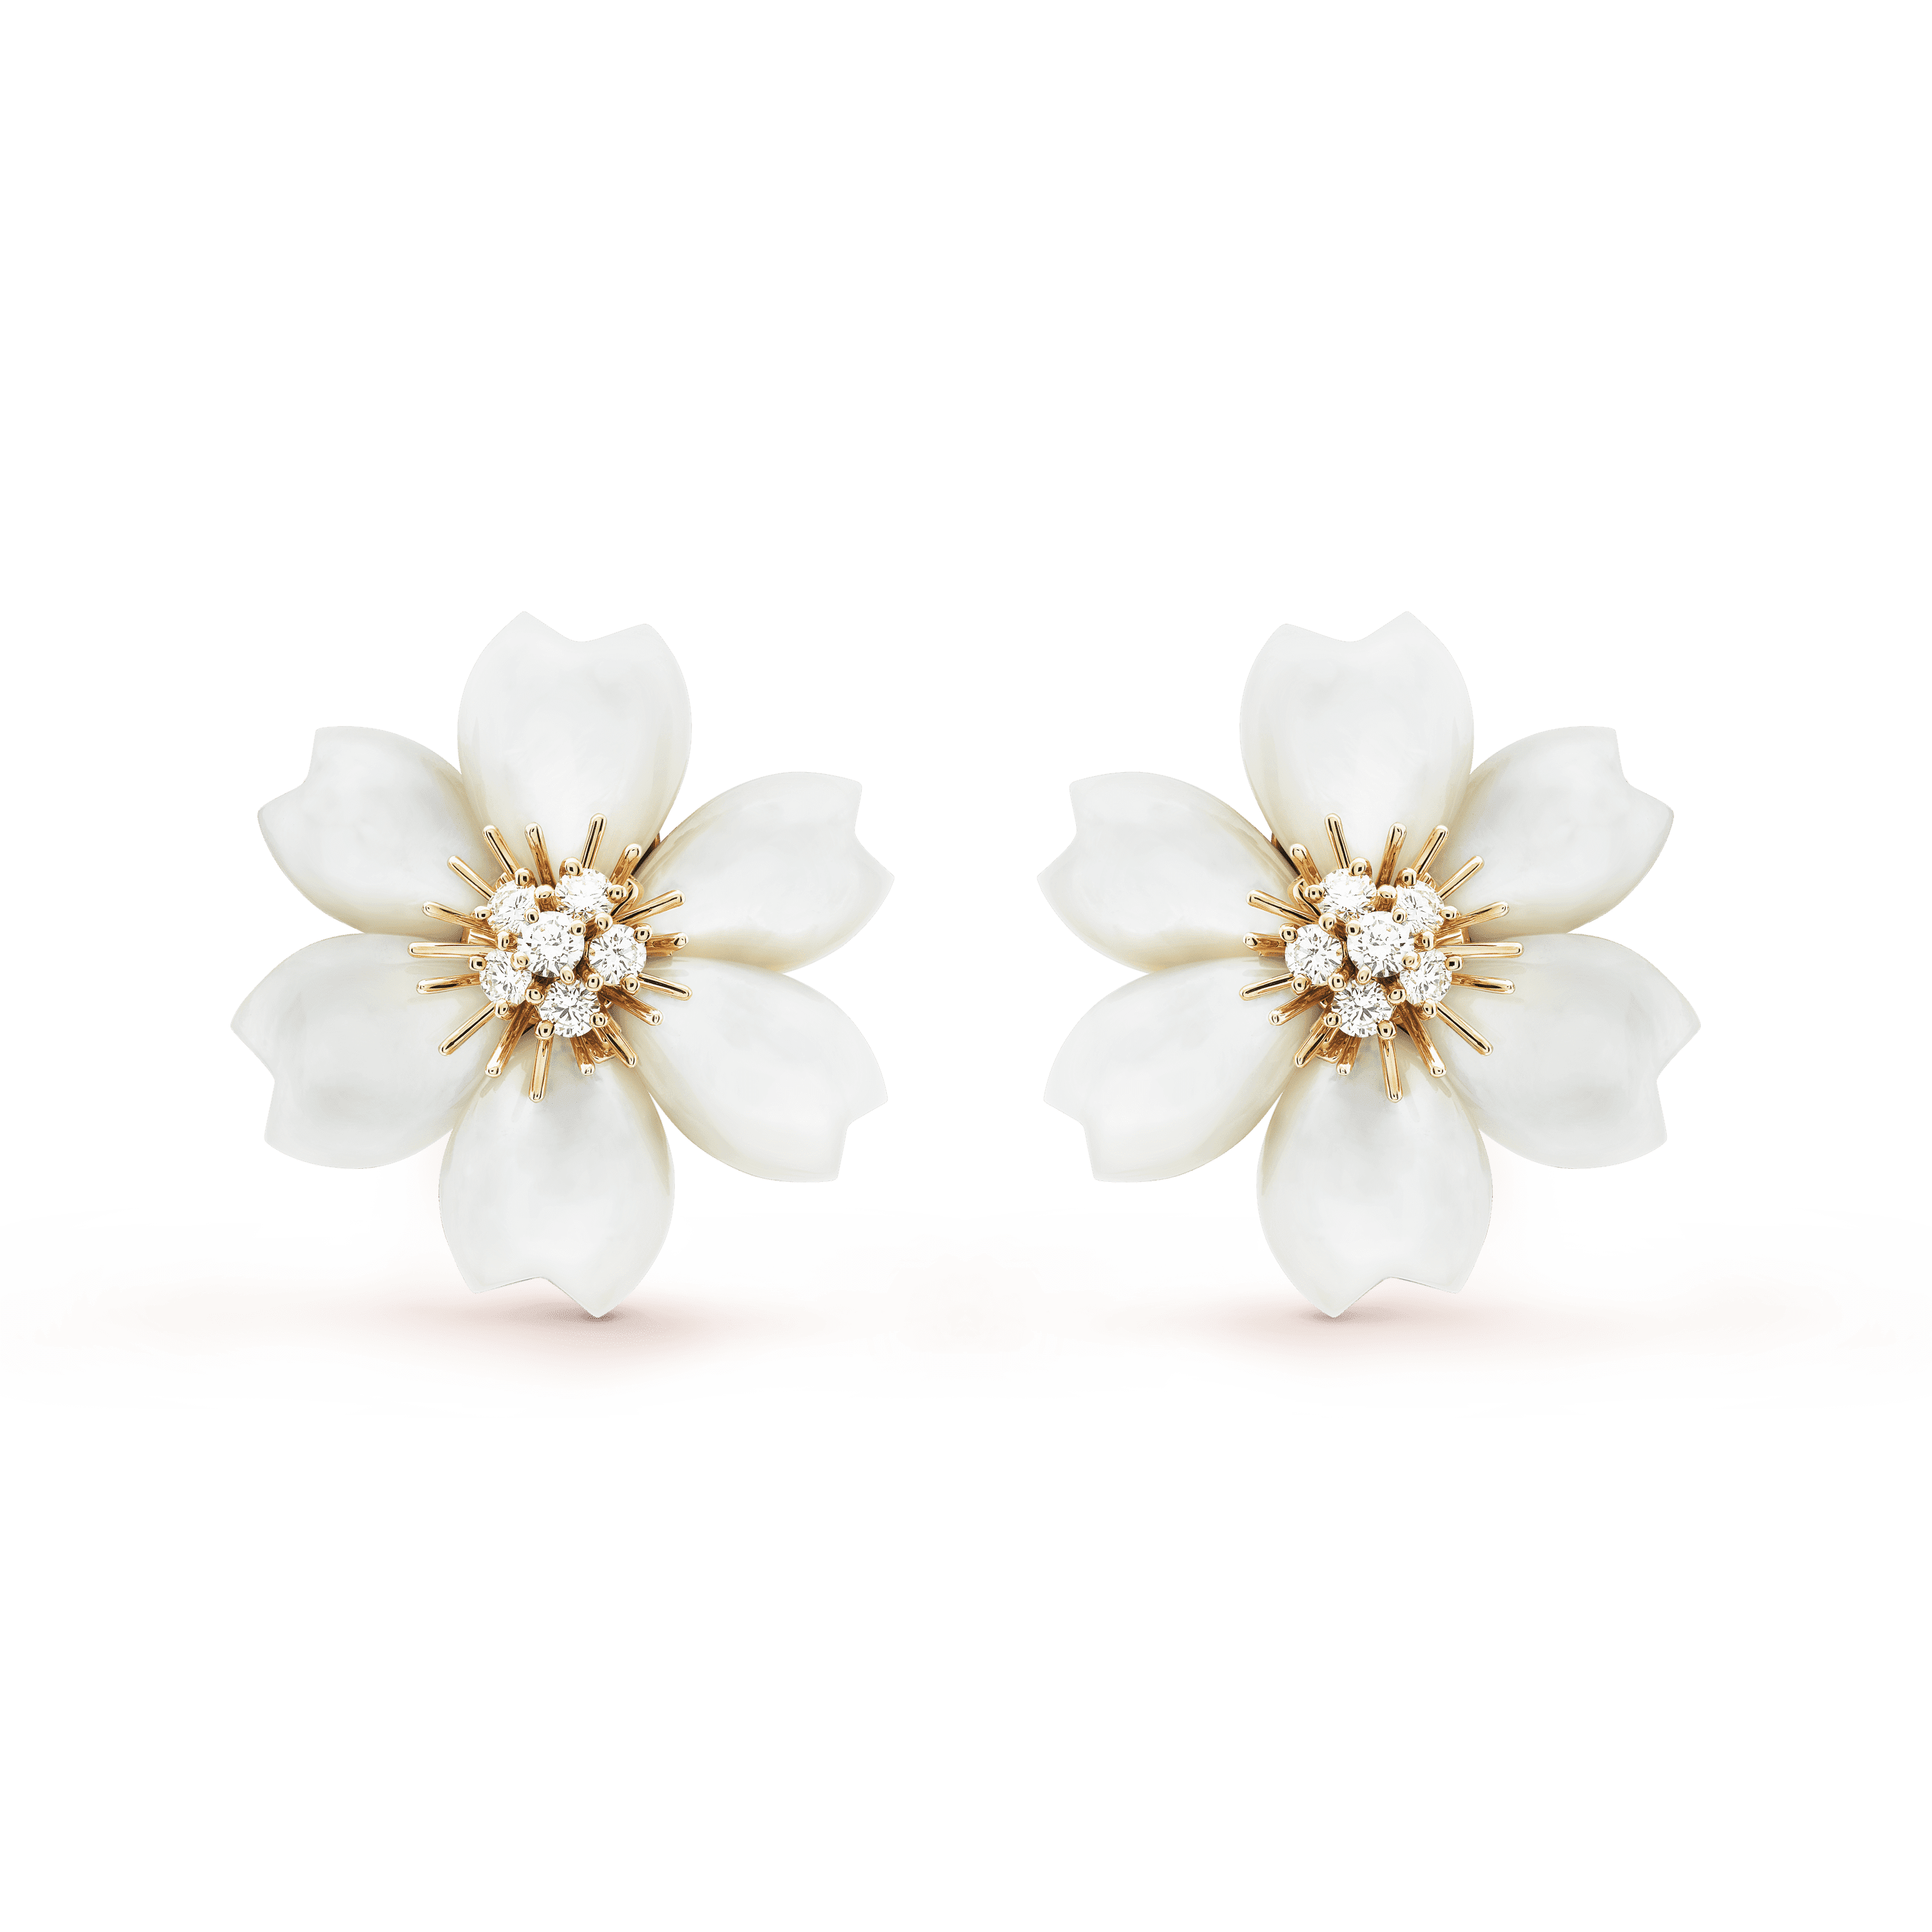 Rose de Noël earrings, small model, - Front View - VCARA55600 - Van Cleef & Arpels